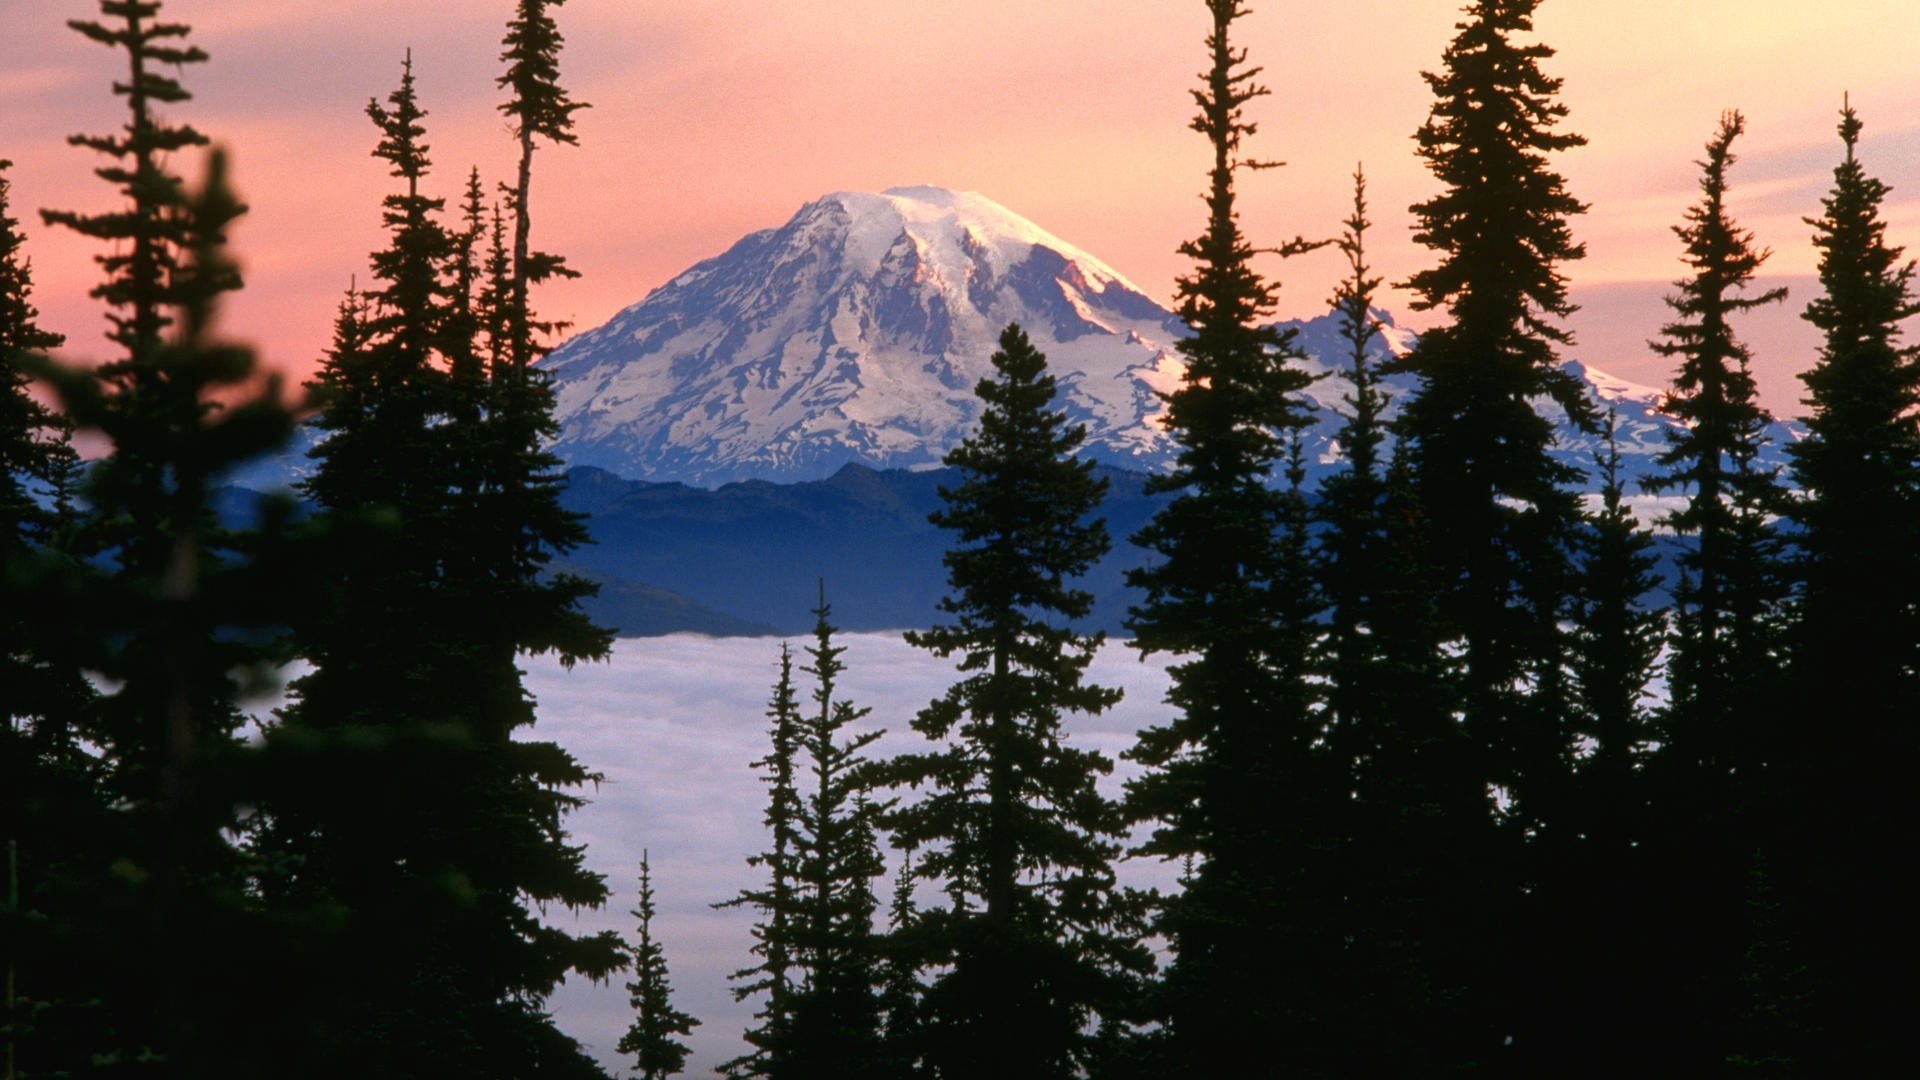 1920x1080 nature-rainier-mount-wallpaper-washington-landscape-image-209510.